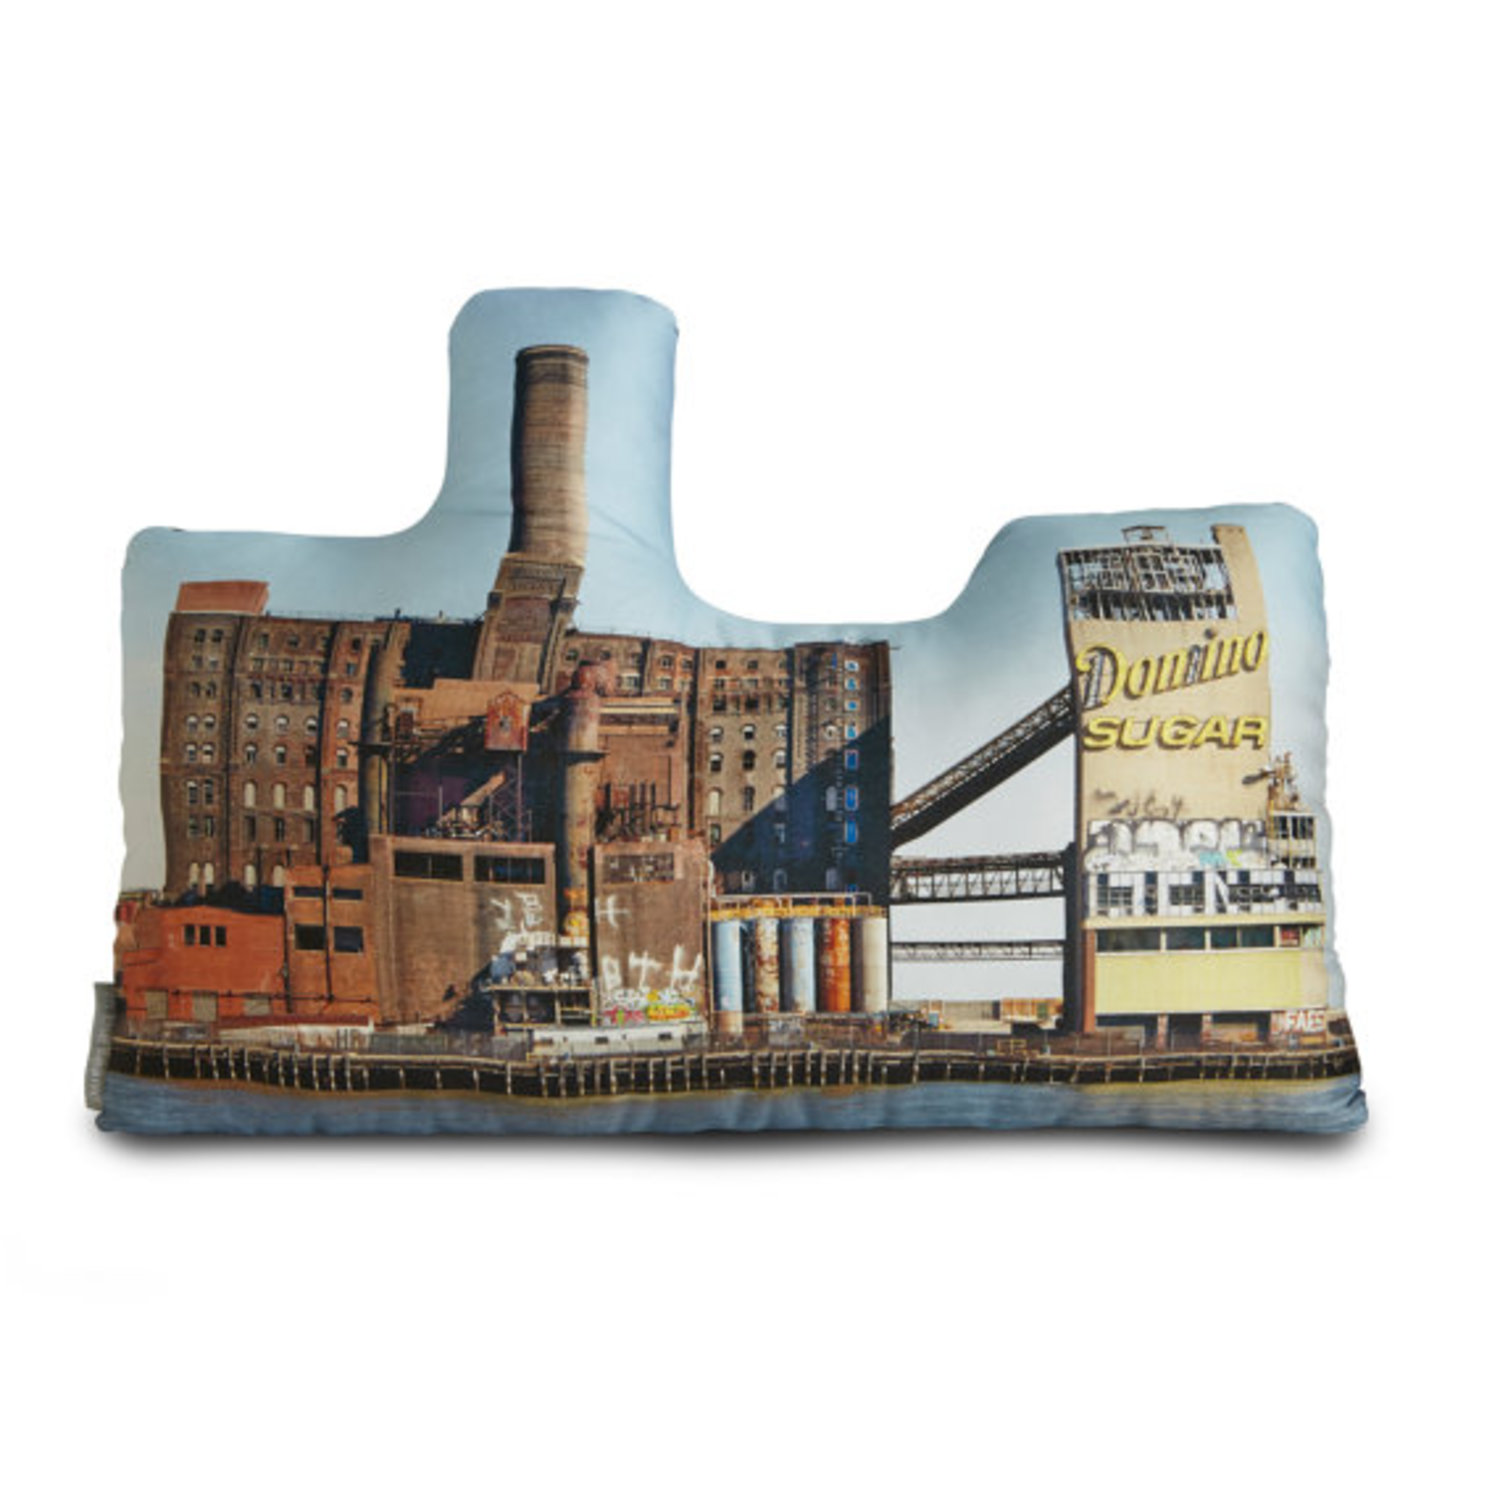 Domino Sugar Refinery Printed Pillow